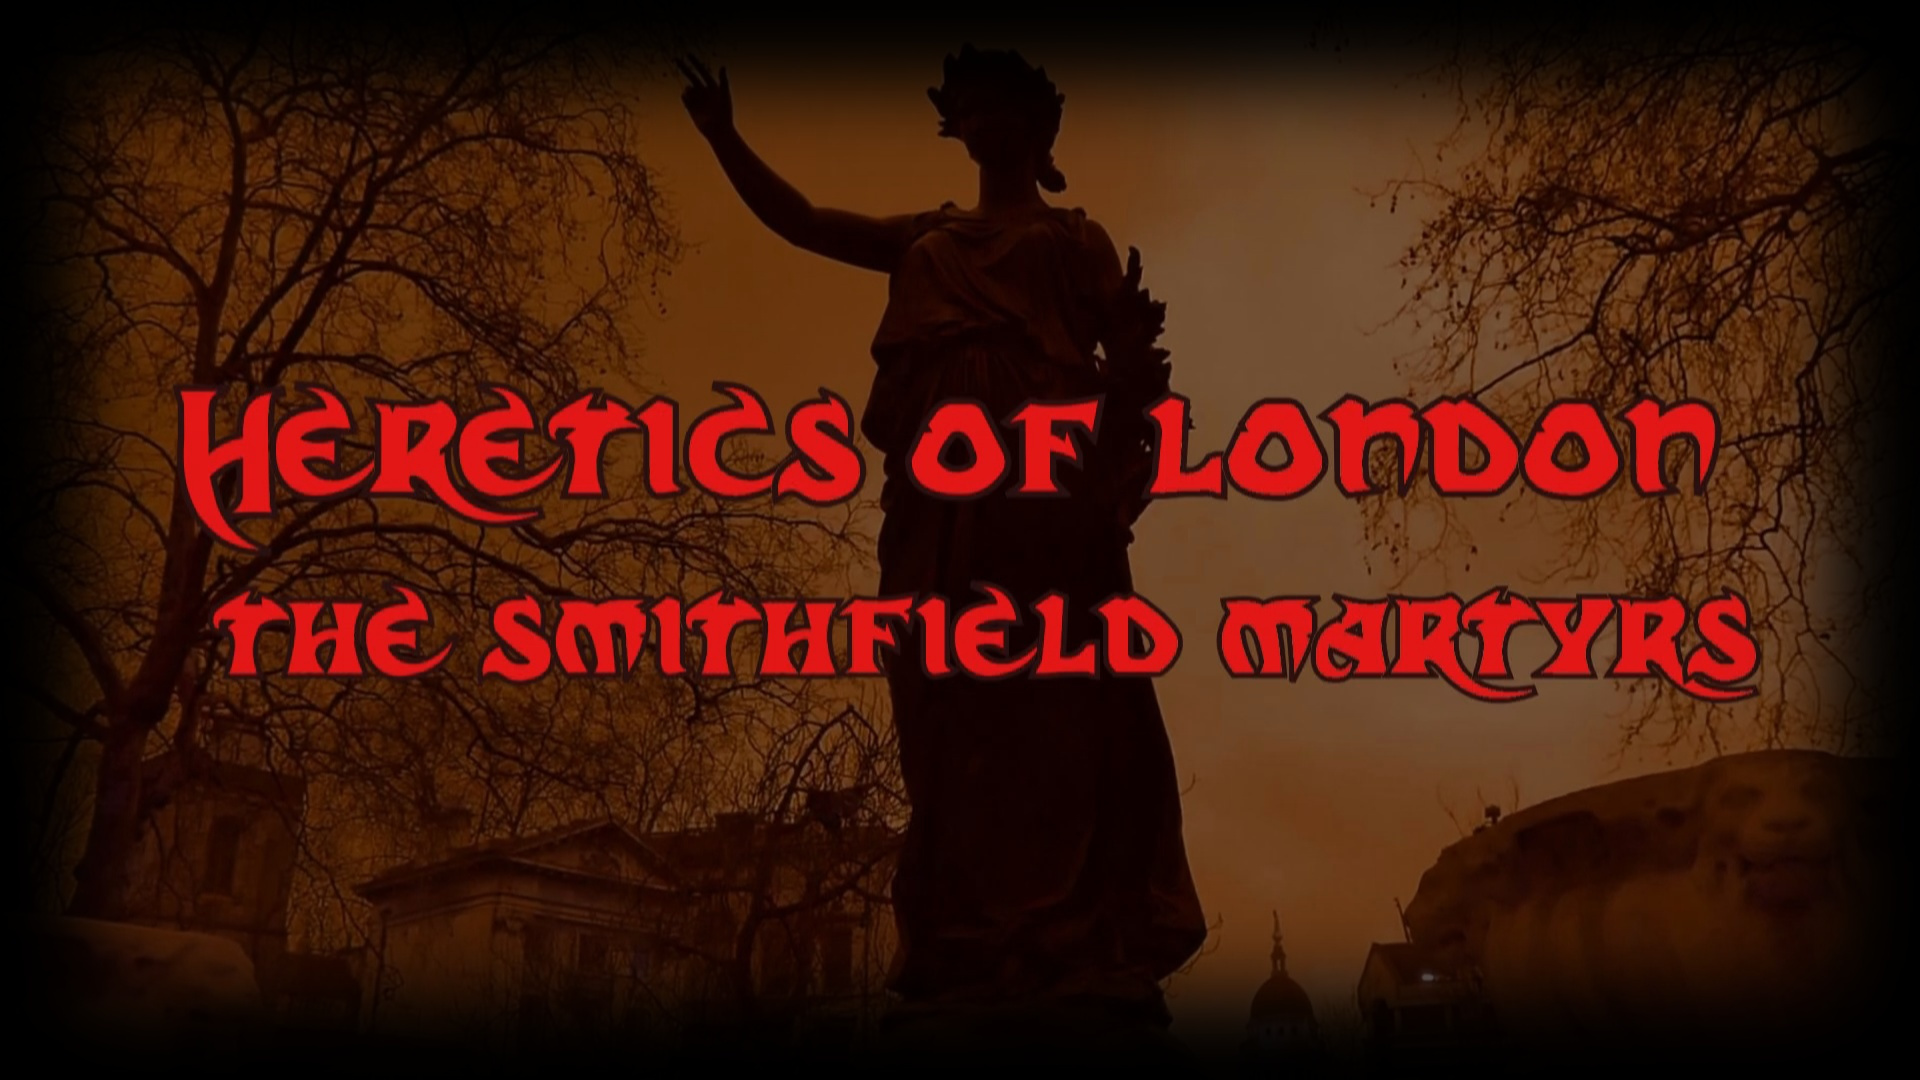 The Smithfiled Martyrs